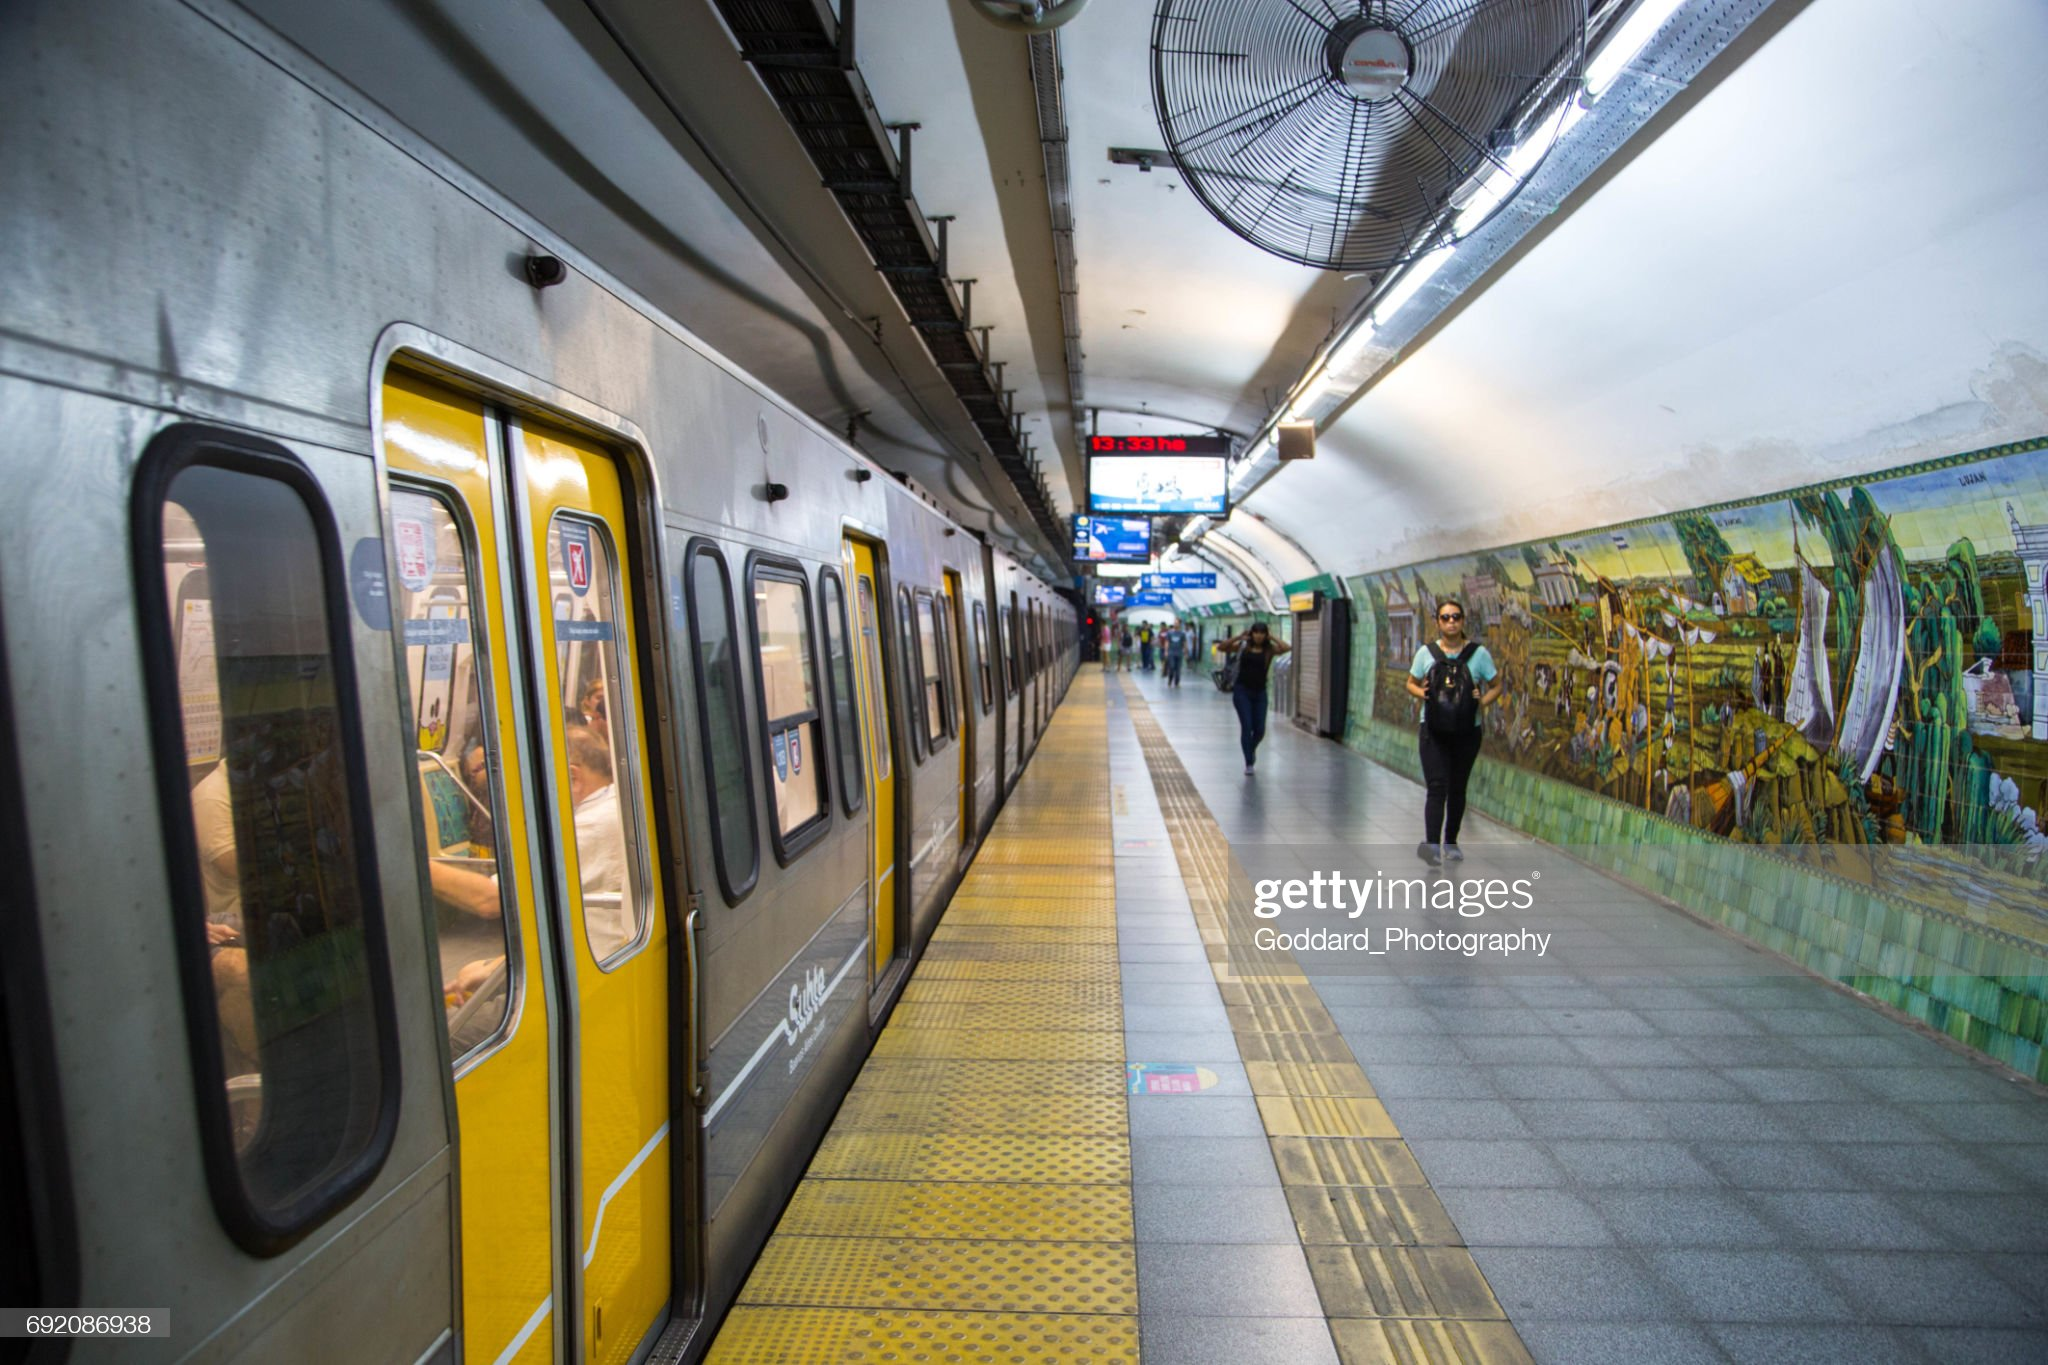 https://media.gettyimages.com/photos/argentina-subte-station-in-buenos-aires-picture-id692086938?s=2048x2048